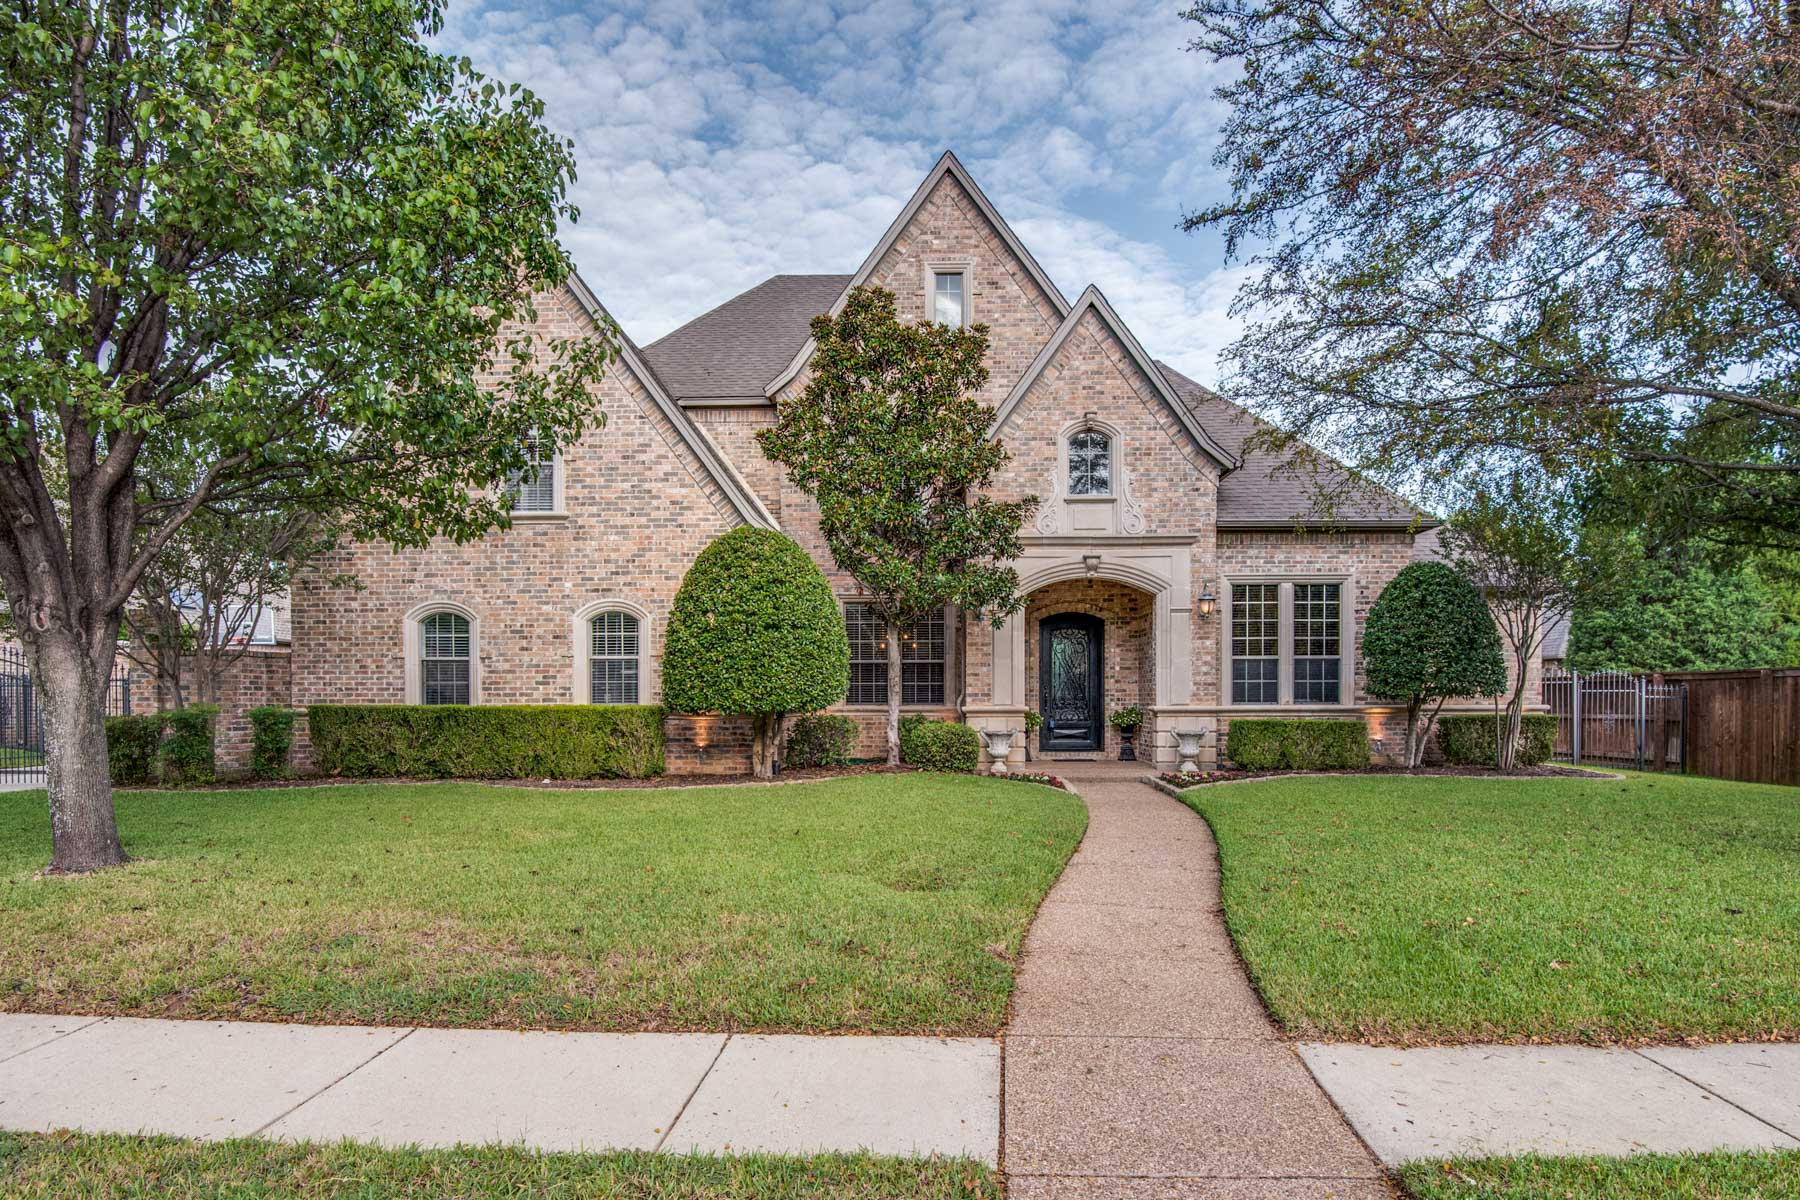 Single Family Home for Sale at Gorgeous Colleyville Custom Home 7003 Shepherds Glen Colleyville, Texas 76034 United States